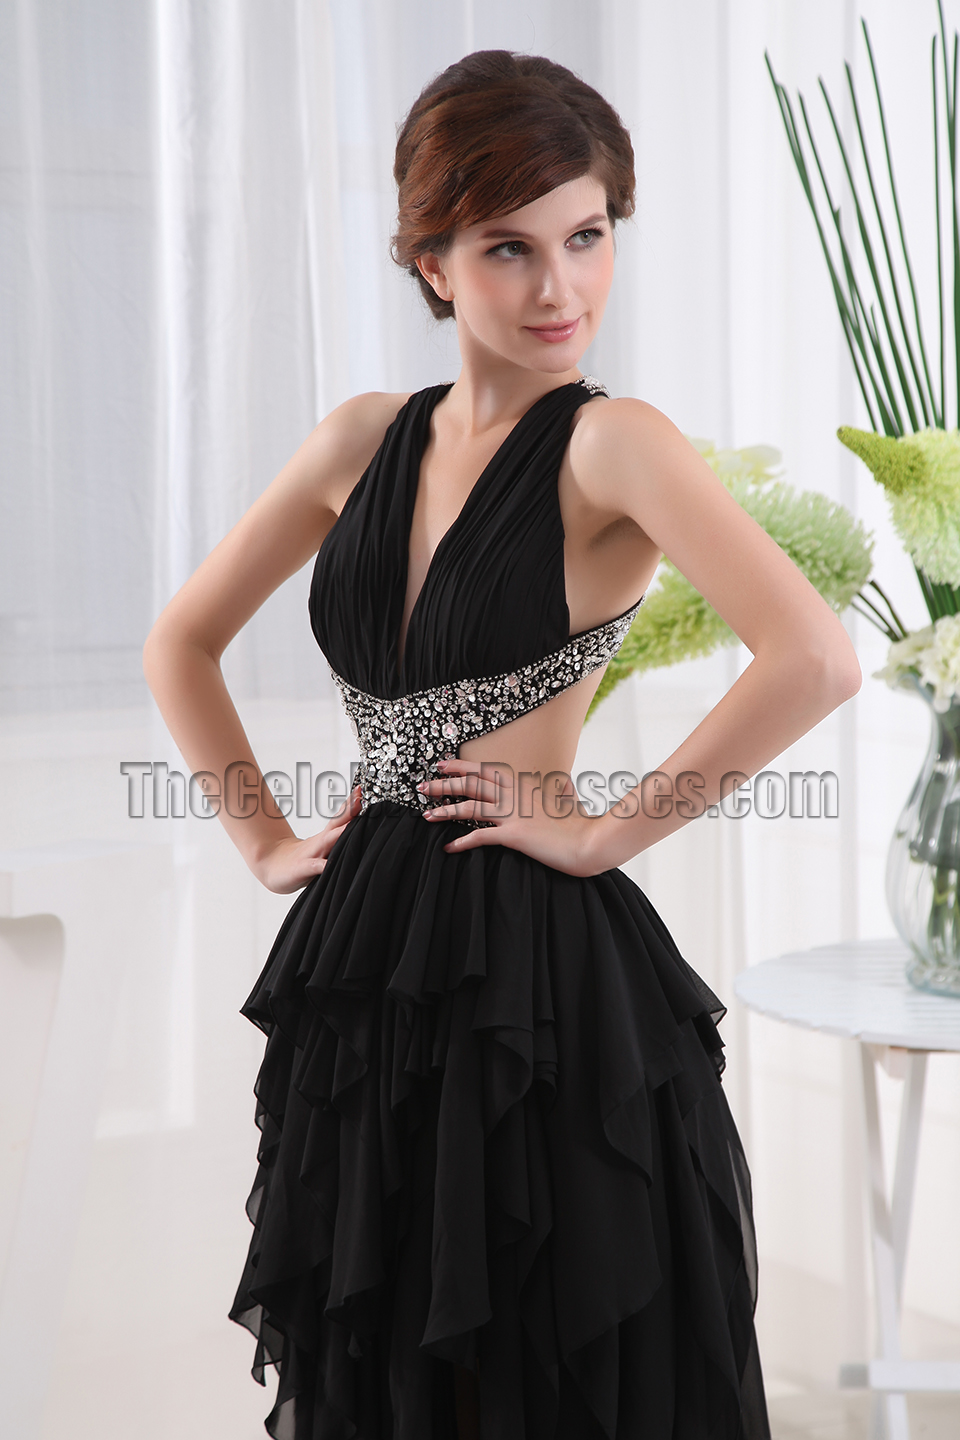 Black Backless High Low Prom Dress Evening Gown - TheCelebrityDresses